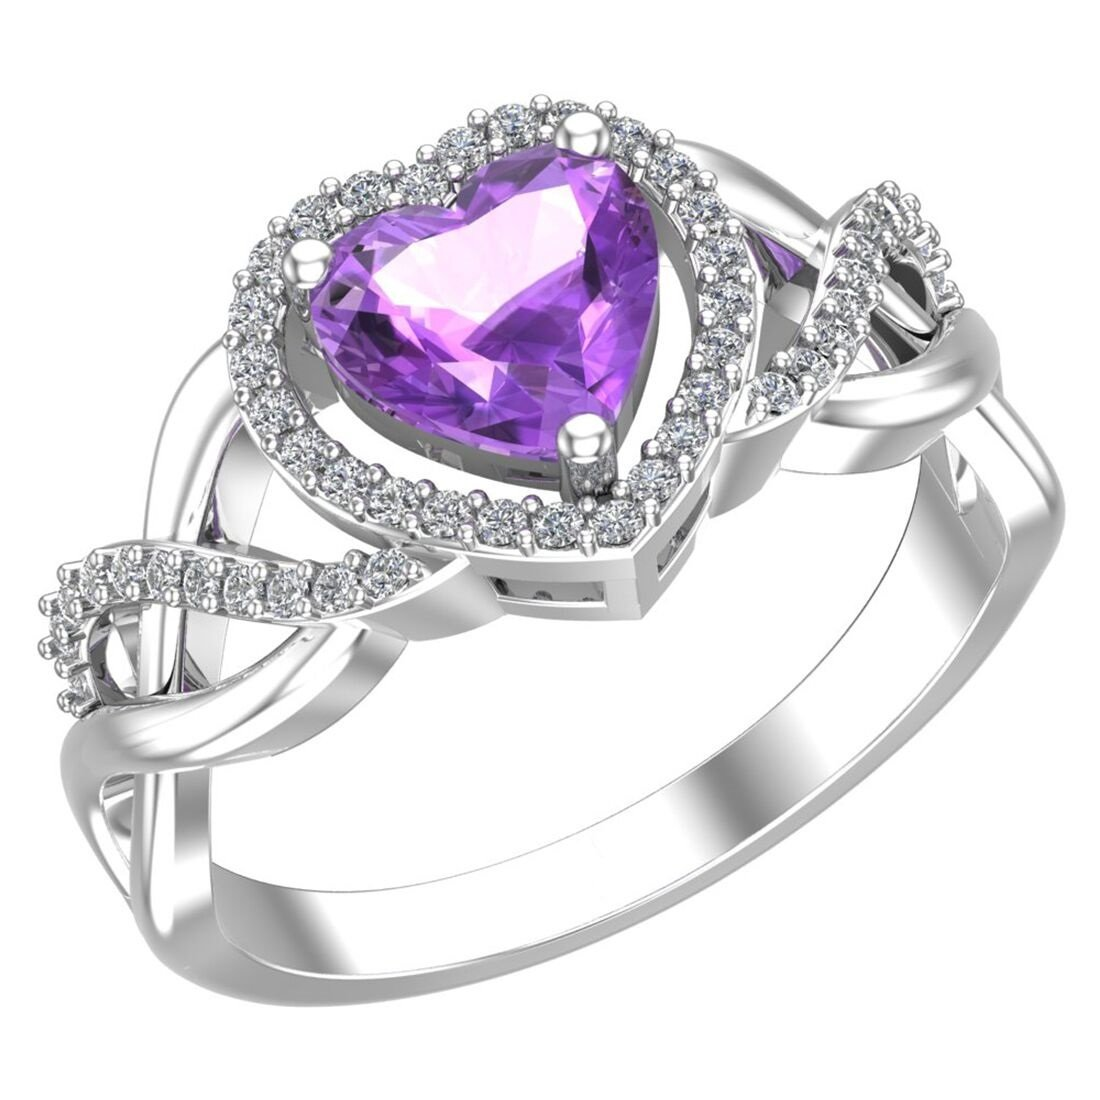 Belinda Jewelz 925 Solid Real Sterling Silver Heart Shaped Gemstone Cubic Zirconia Diamond Prong Rhodium Engagement Wedding Classic Womens Fine Jewelry Twisted Band Ring, Amethyst Purple, Size 7